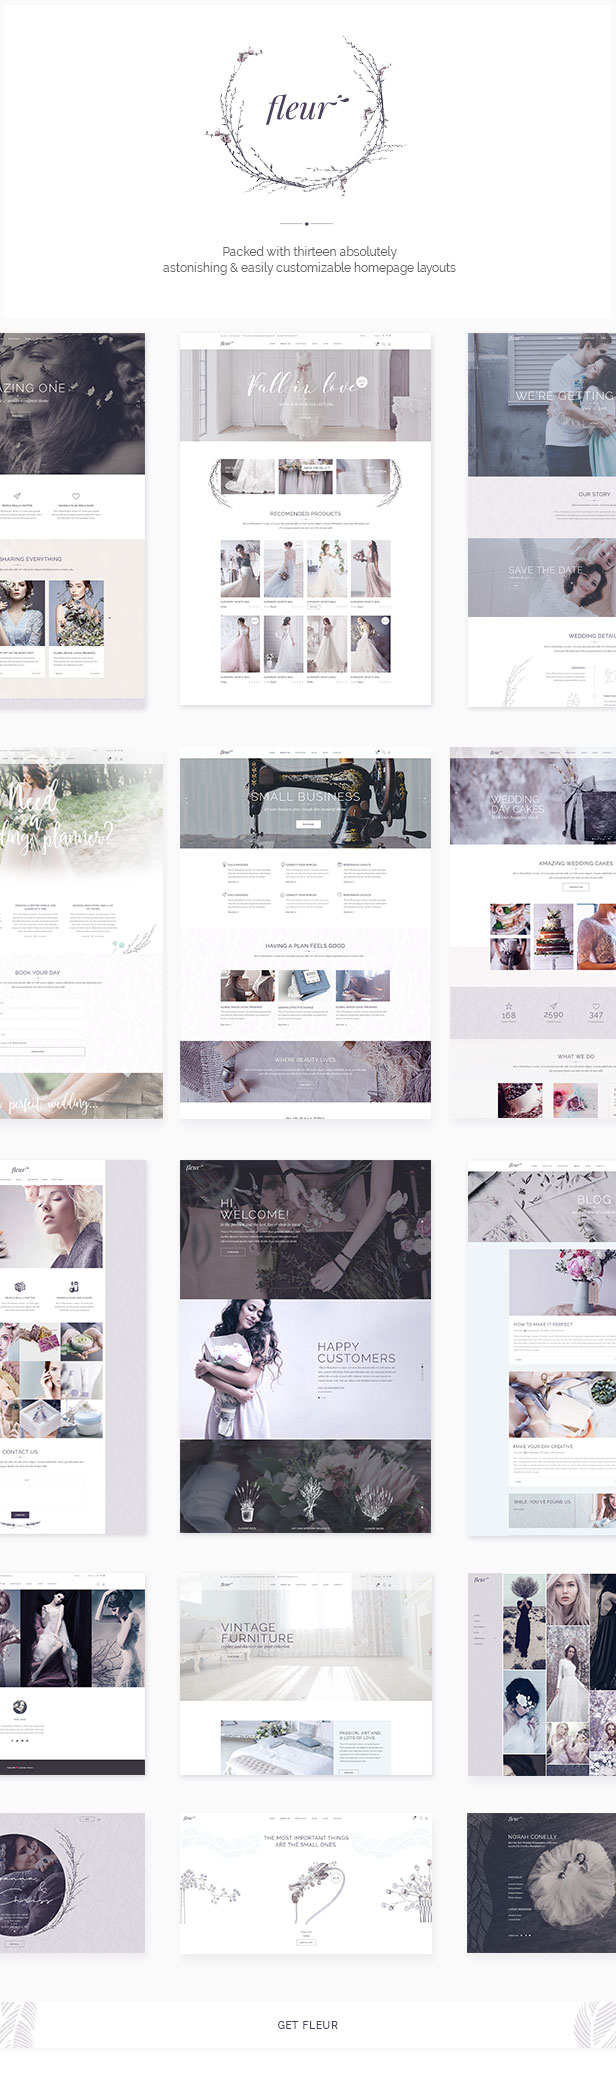 Fleur - Wedding Theme for Celebrations and Wedding Businesses - 1